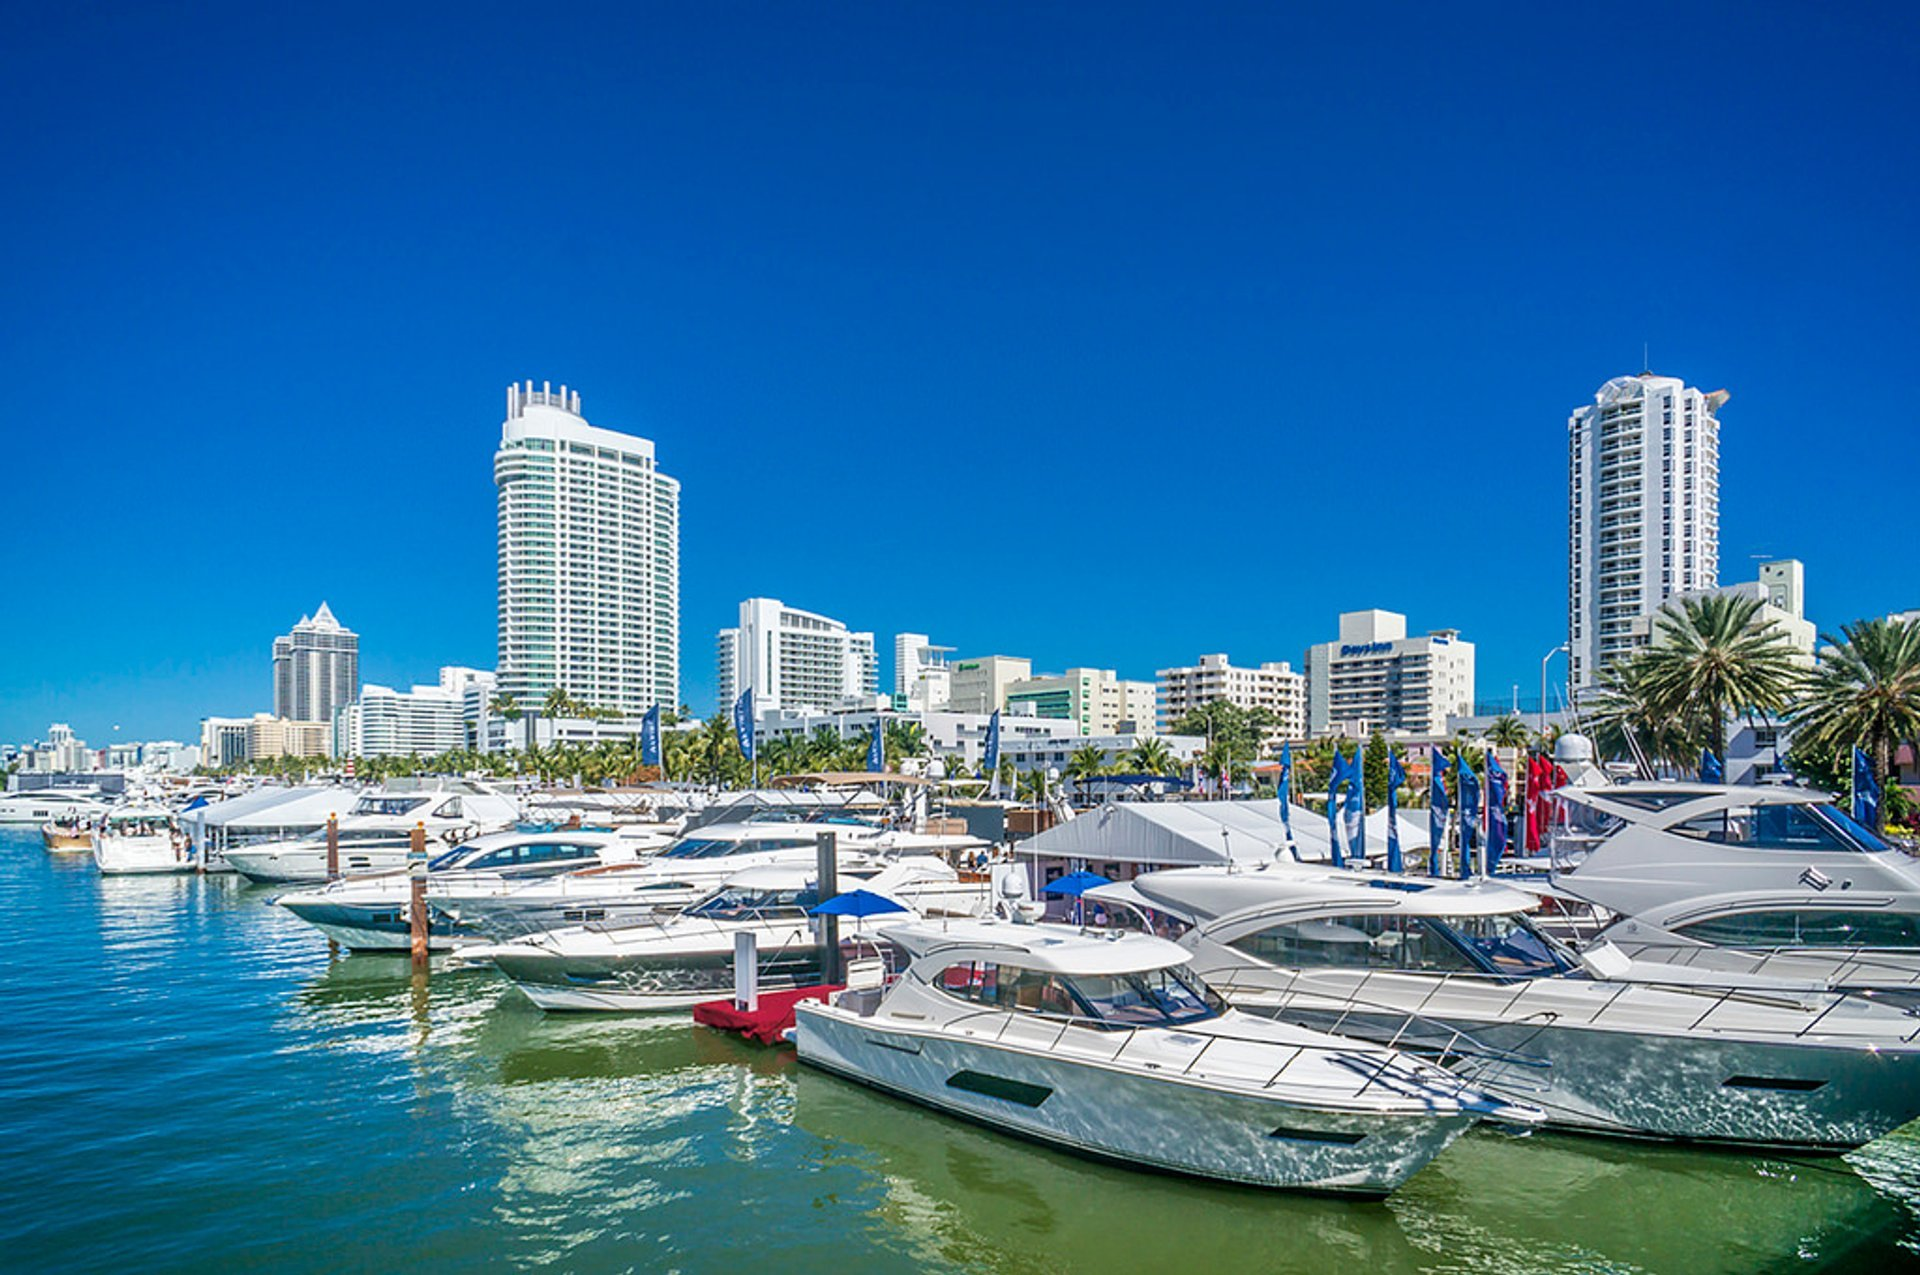 Miami International Boat Show & Strictly Sail in Miami 2019 - Best Time